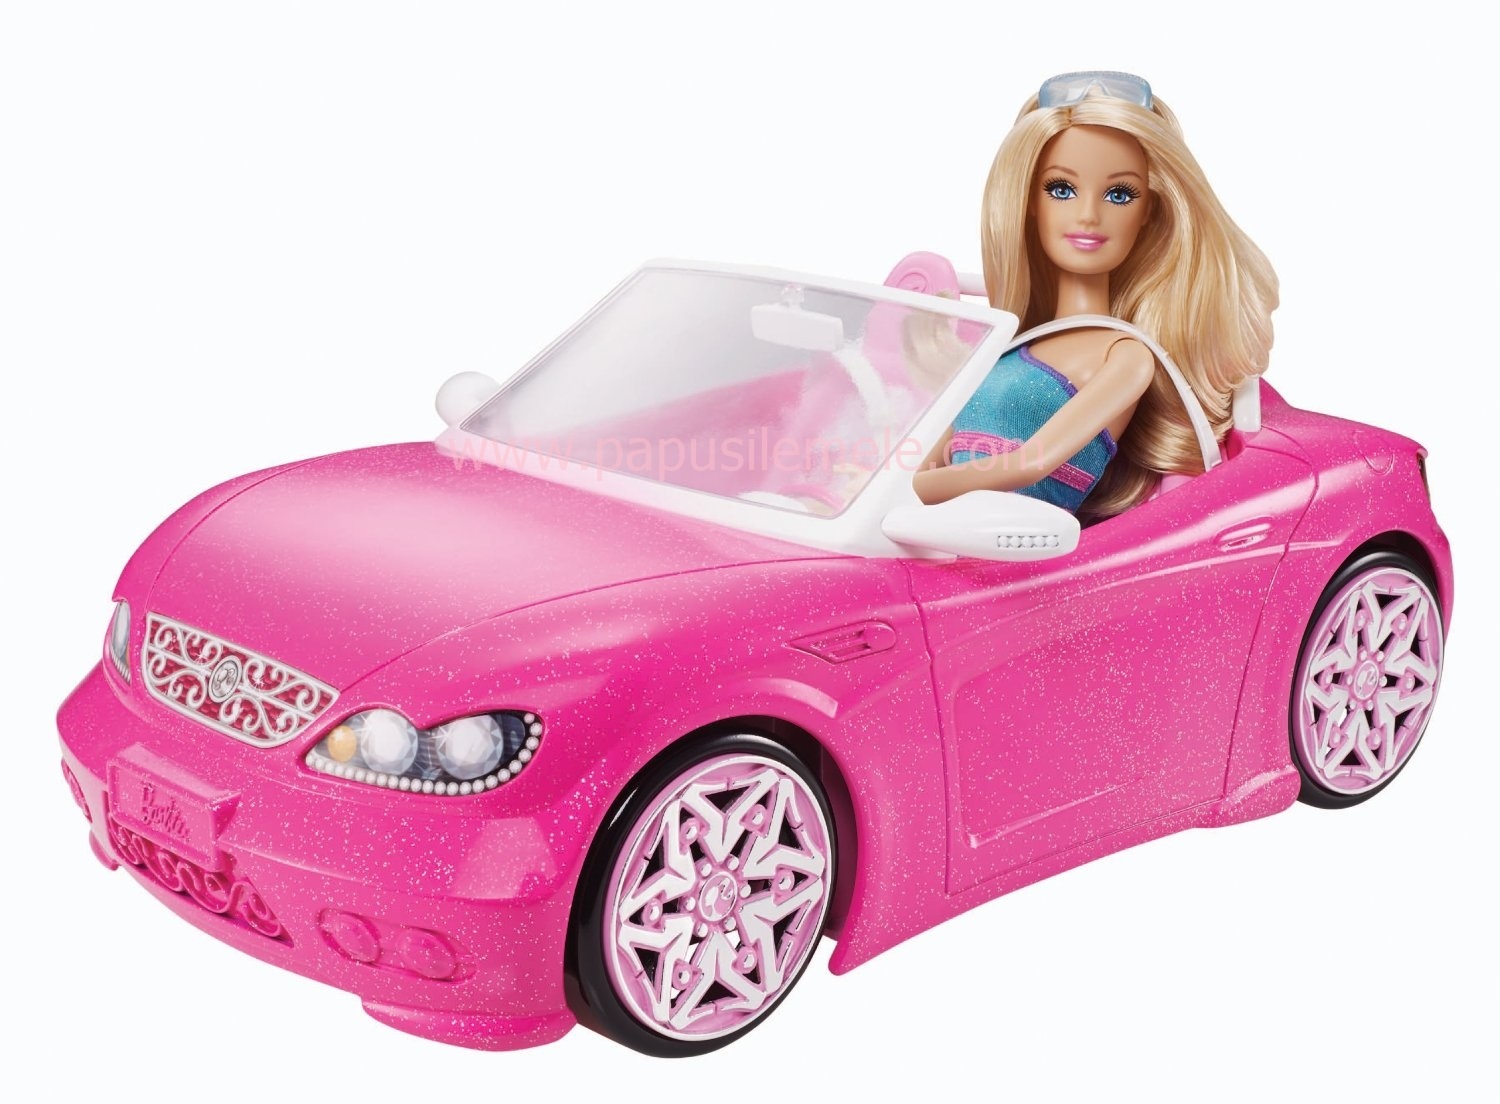 Cute Barbie Doll Wallpaper Images Two New Barbie Cars For 2014